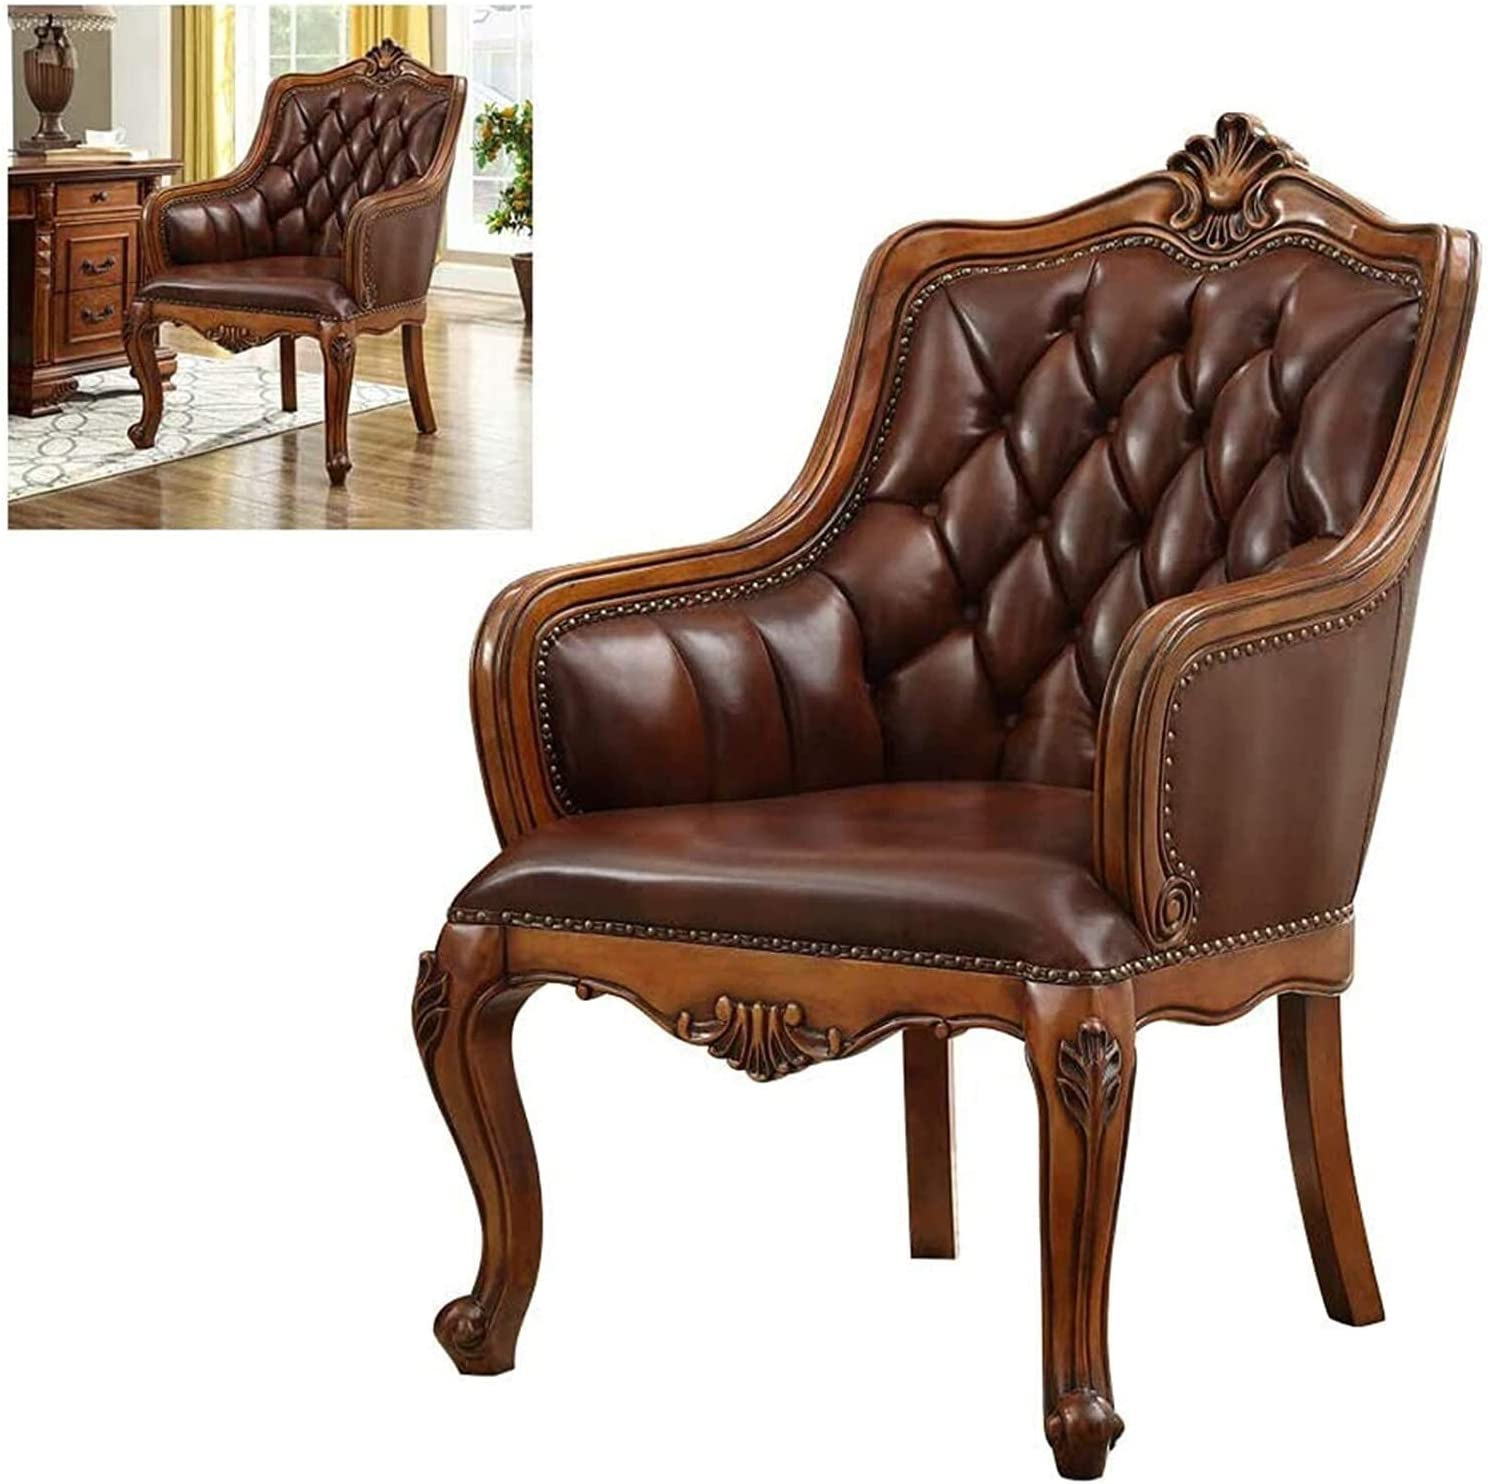 ZHANGYUEFEIFZ Chair Dining Chairs Office Pro Boss Leather Raleigh Mall